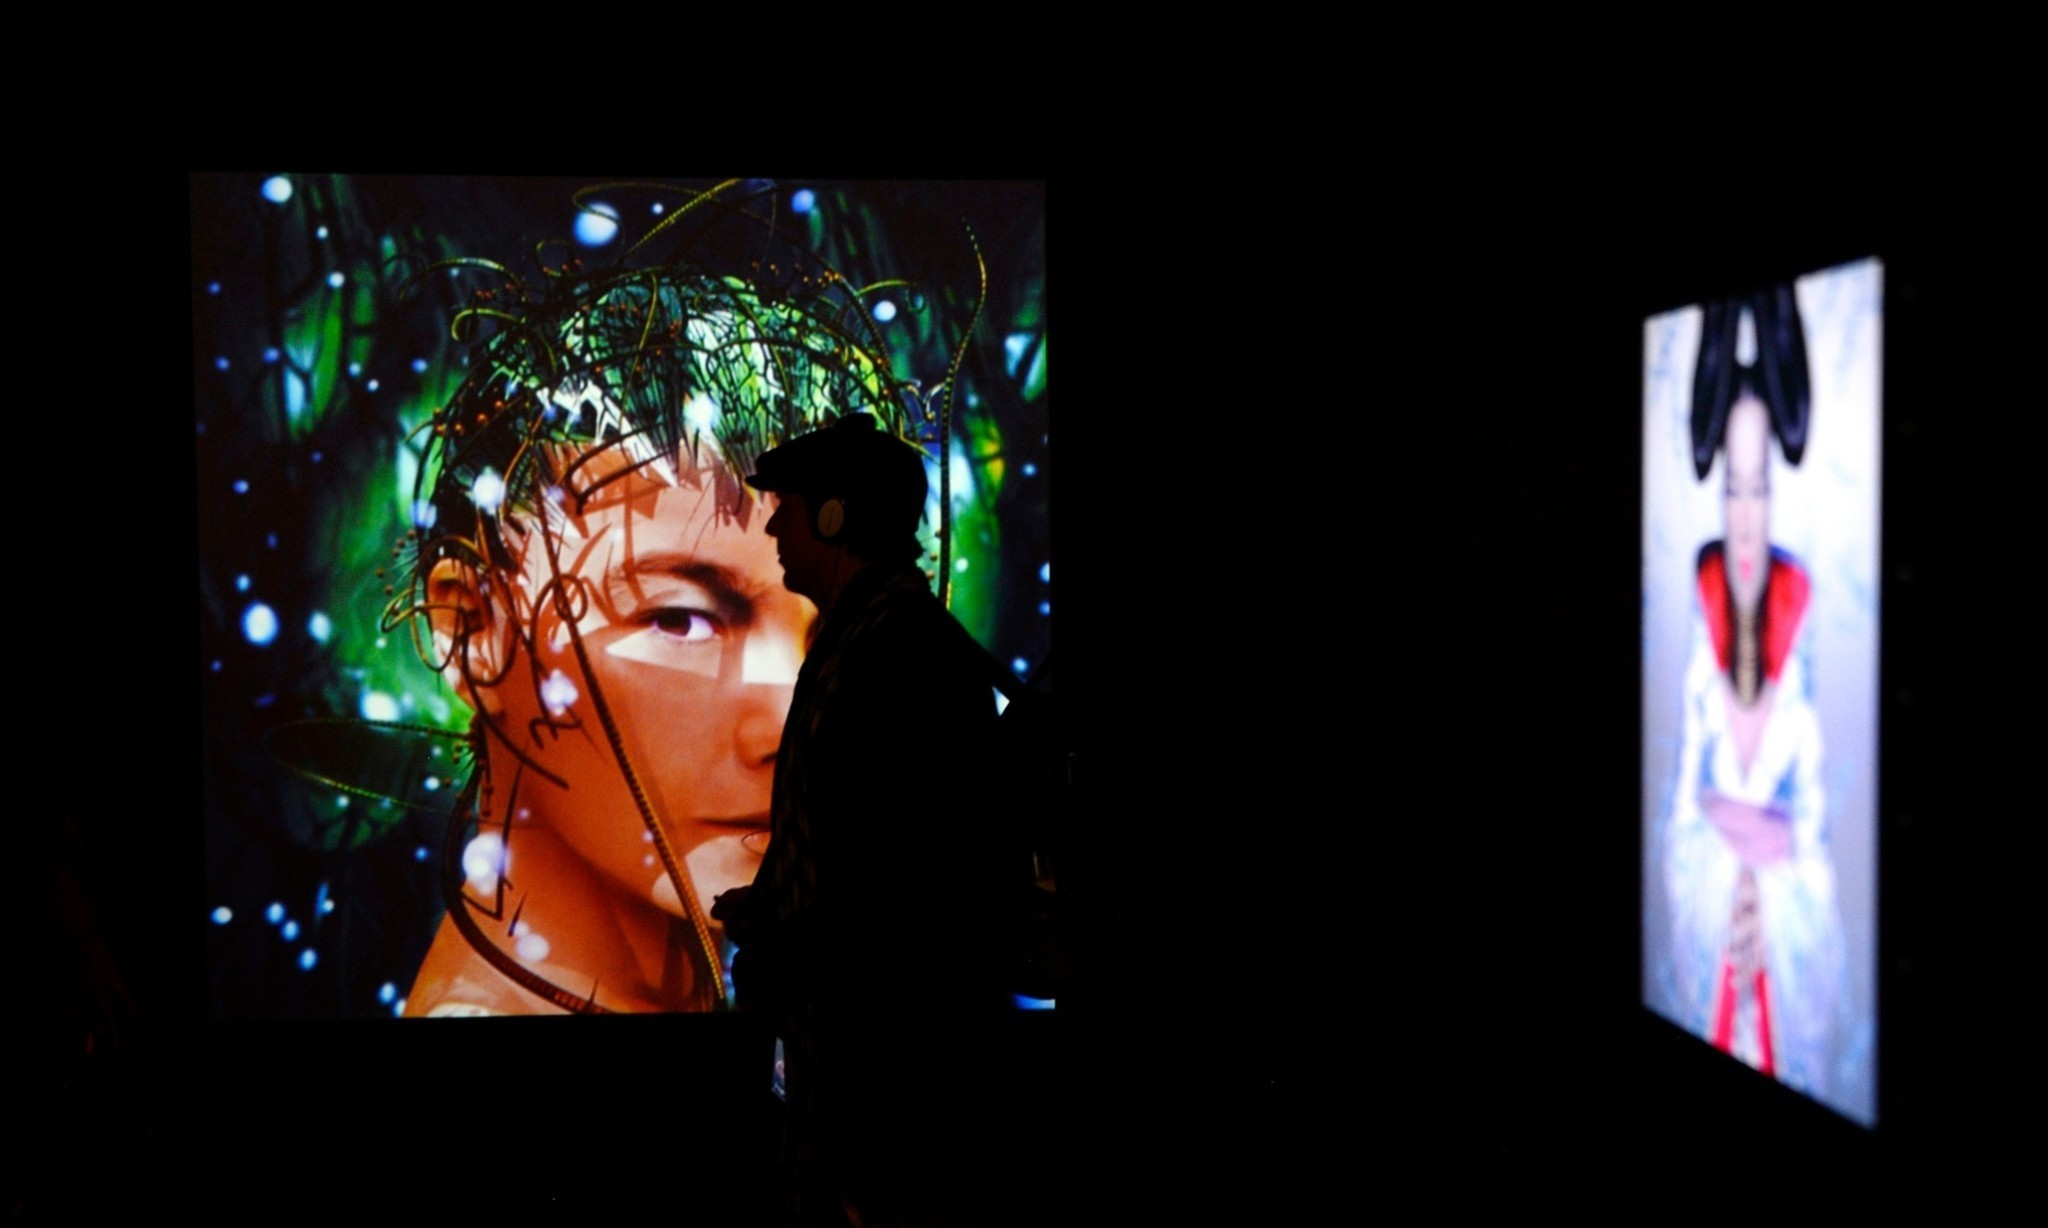 Björk exhibition at MoMA celebrates 'paradigmatic artist of the 90s'